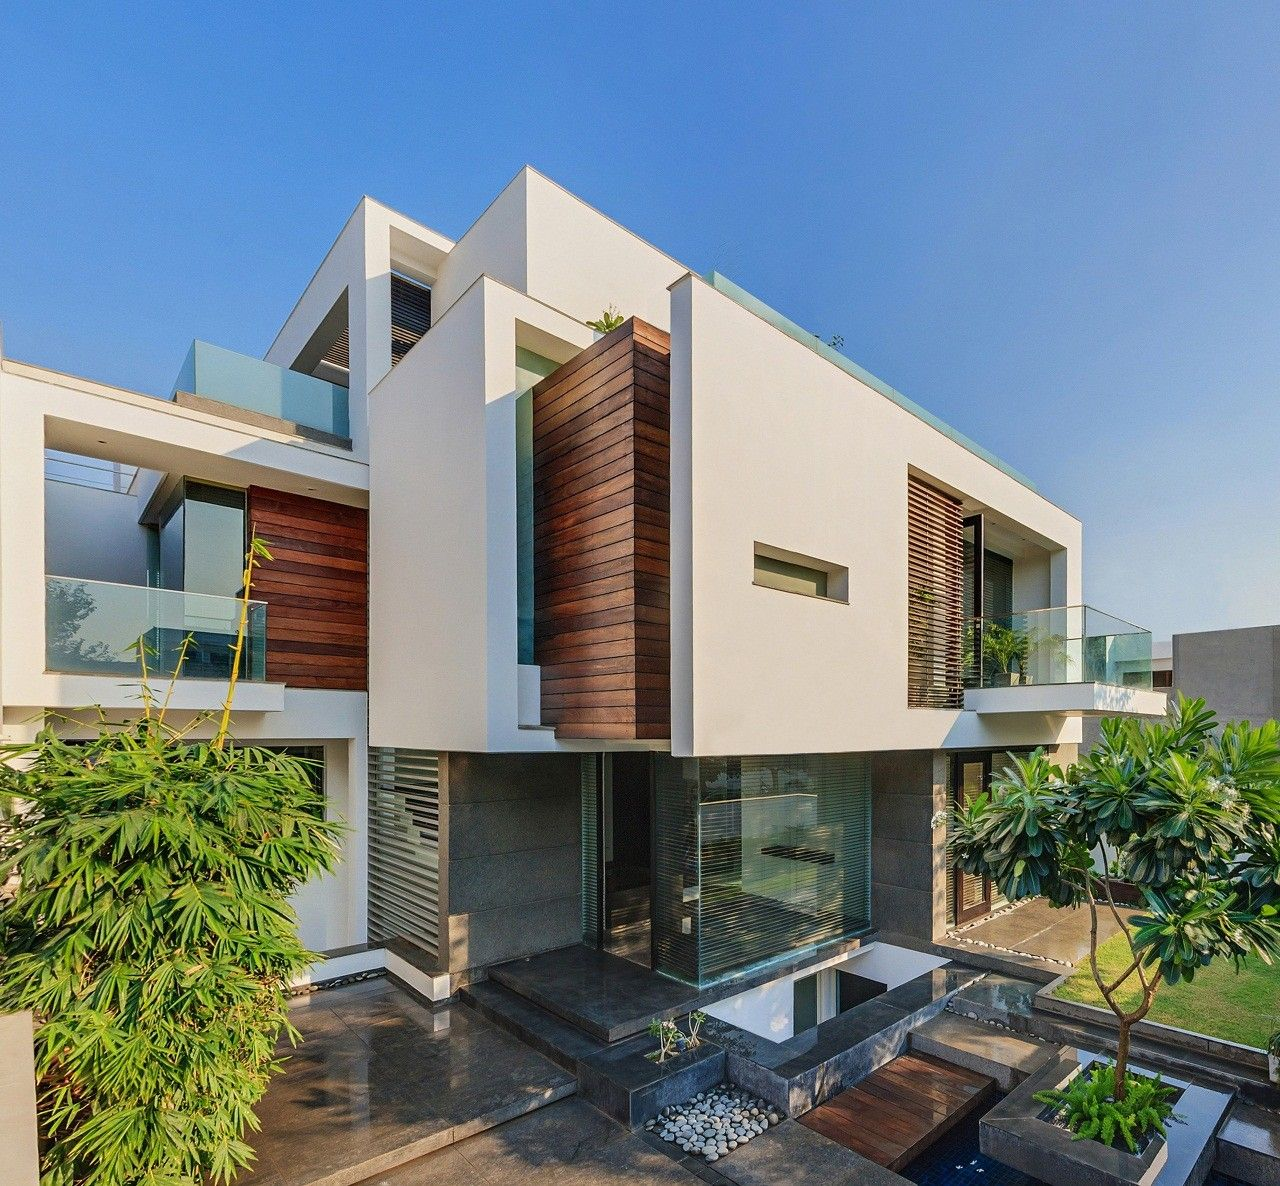 architecture design built by dada partners in new delhi india the brief required a house for - Architecture Design For Home In Delhi